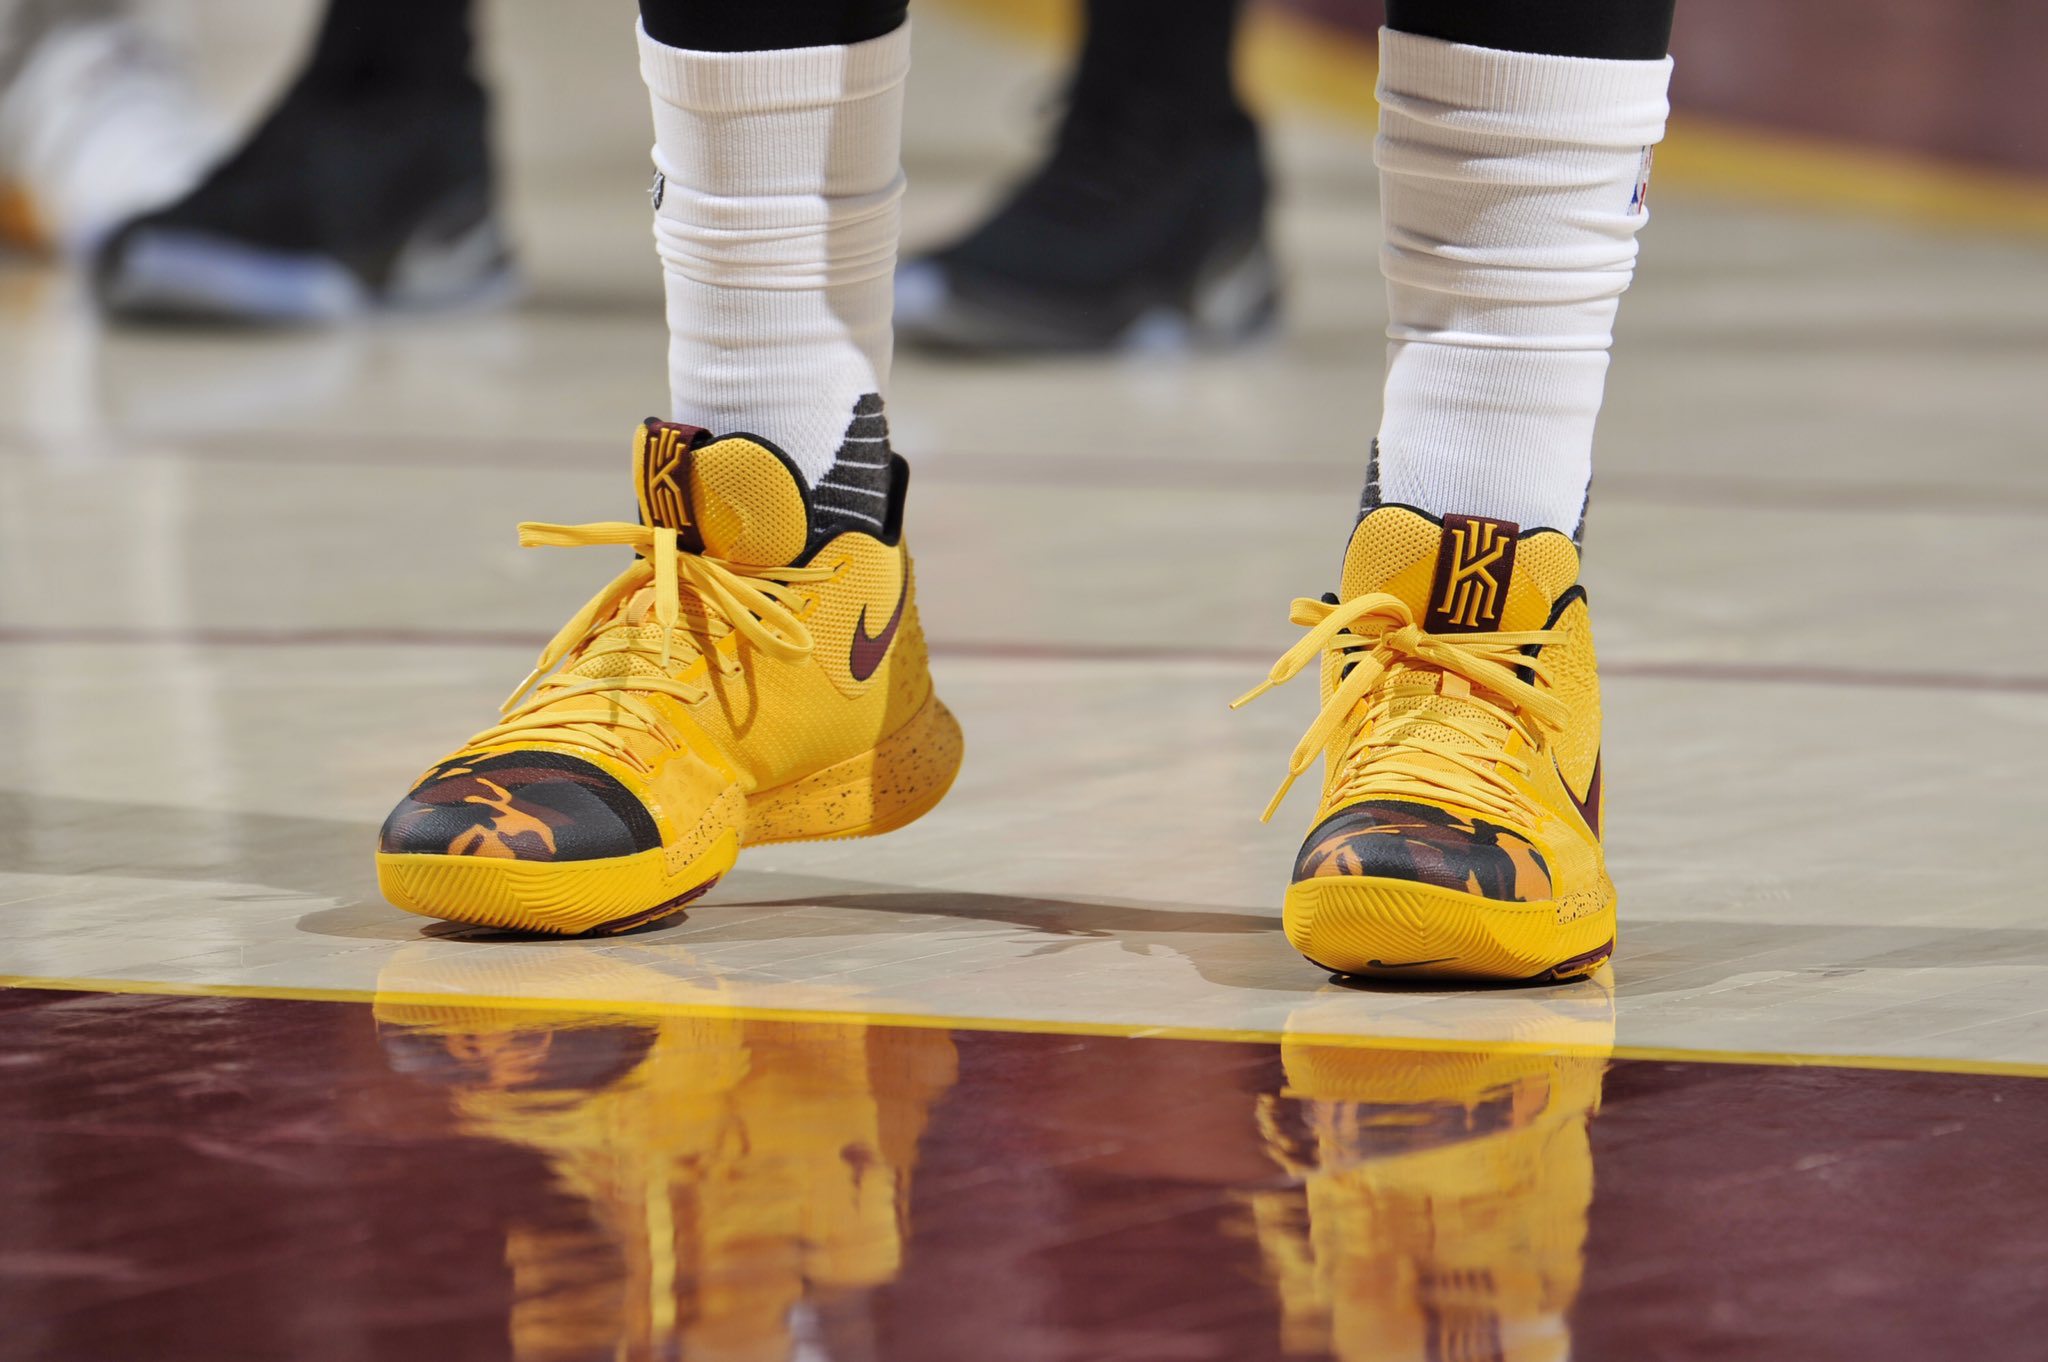 A closer look at @KyrieIrving in the Nike Kyrie 3 tonight vs. Indiana